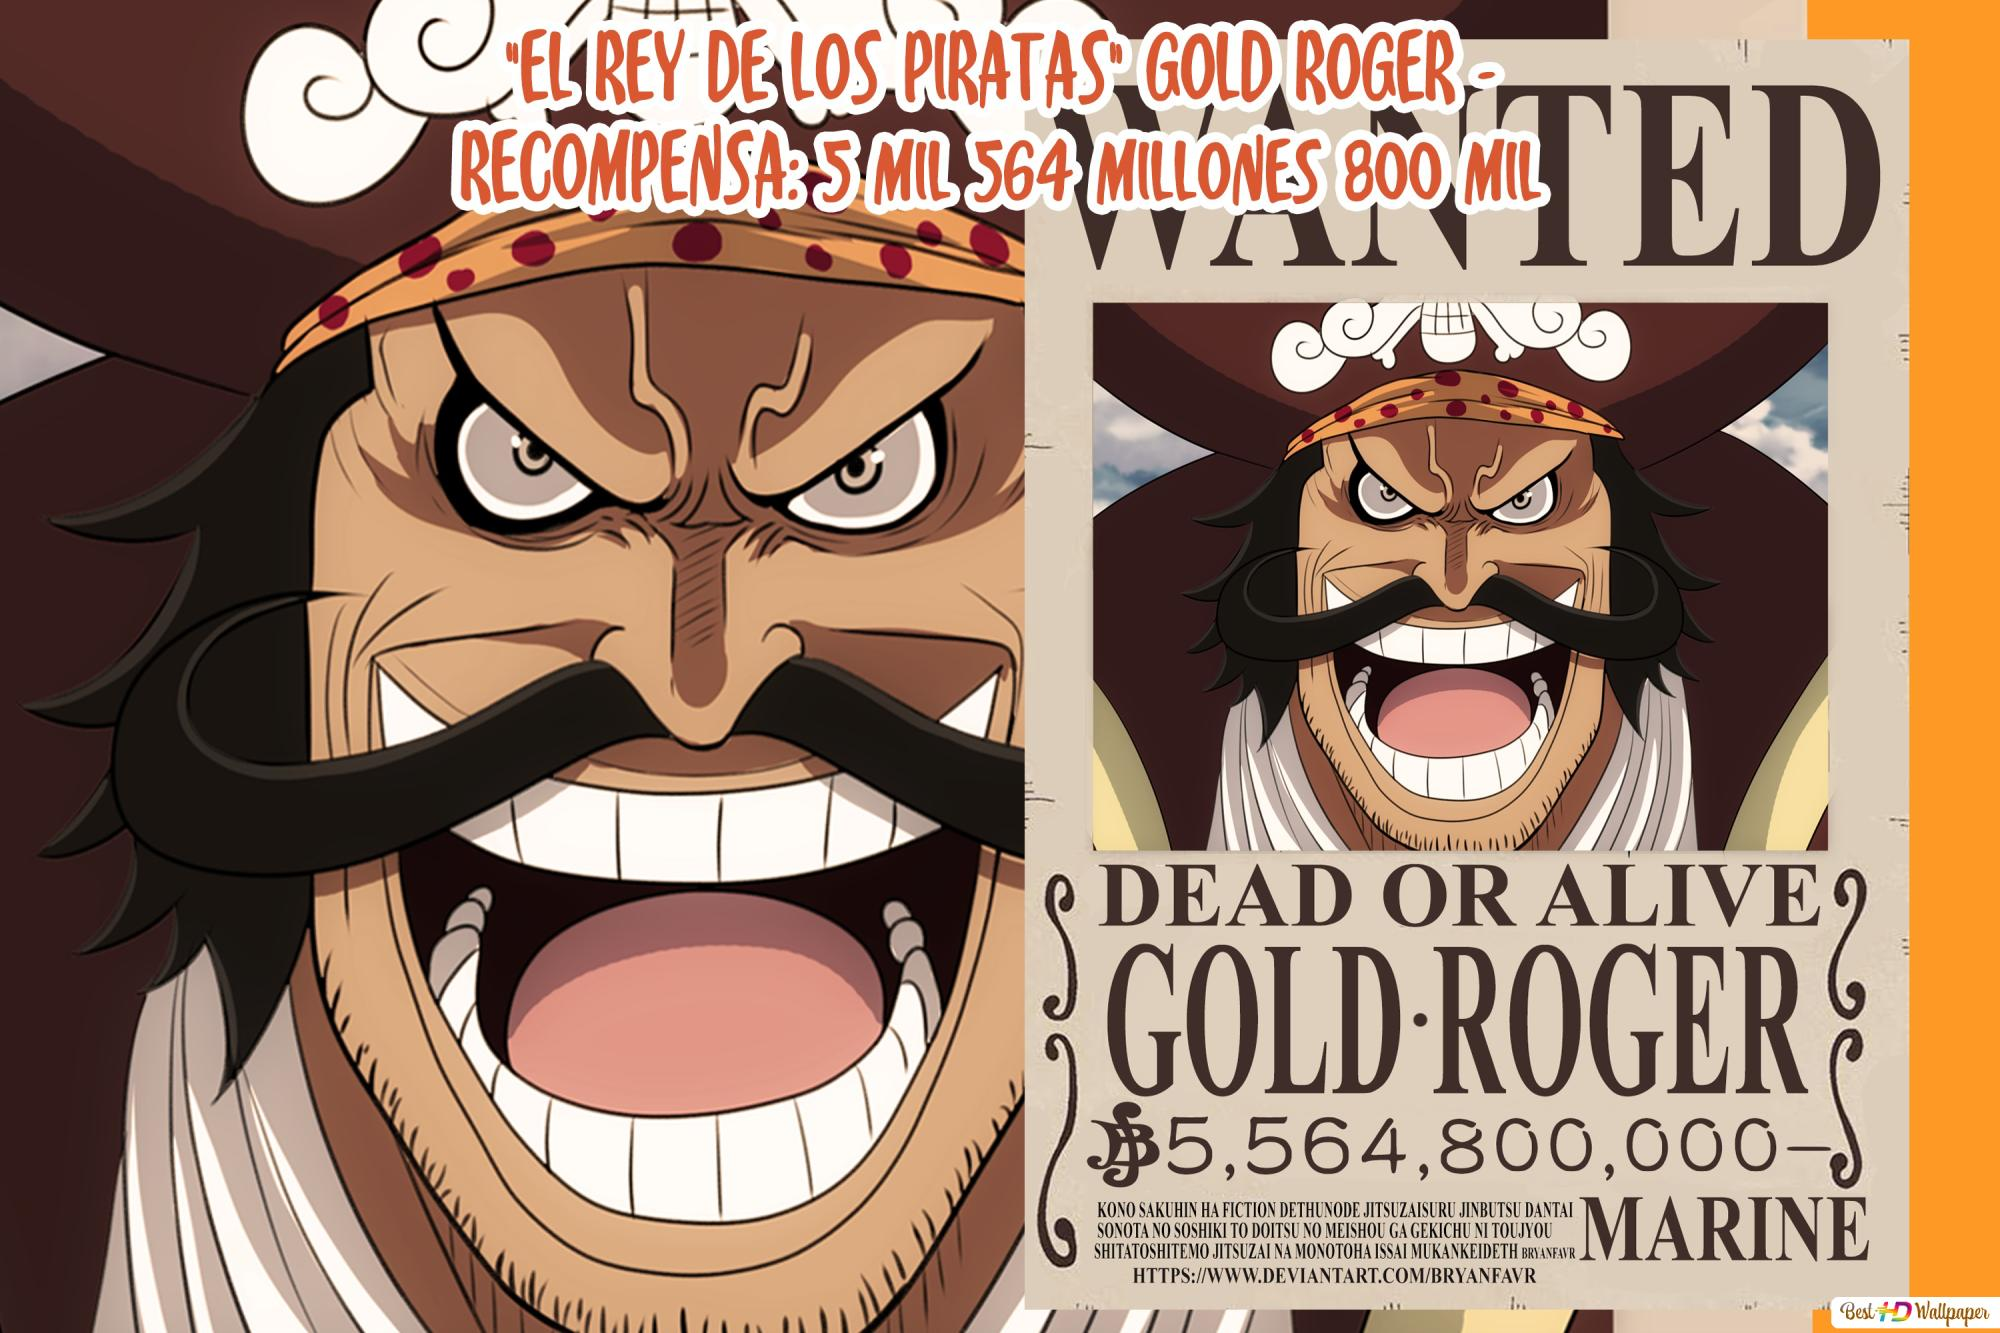 One Piece Gol D Roger Wanted Poster Hd Wallpaper Download